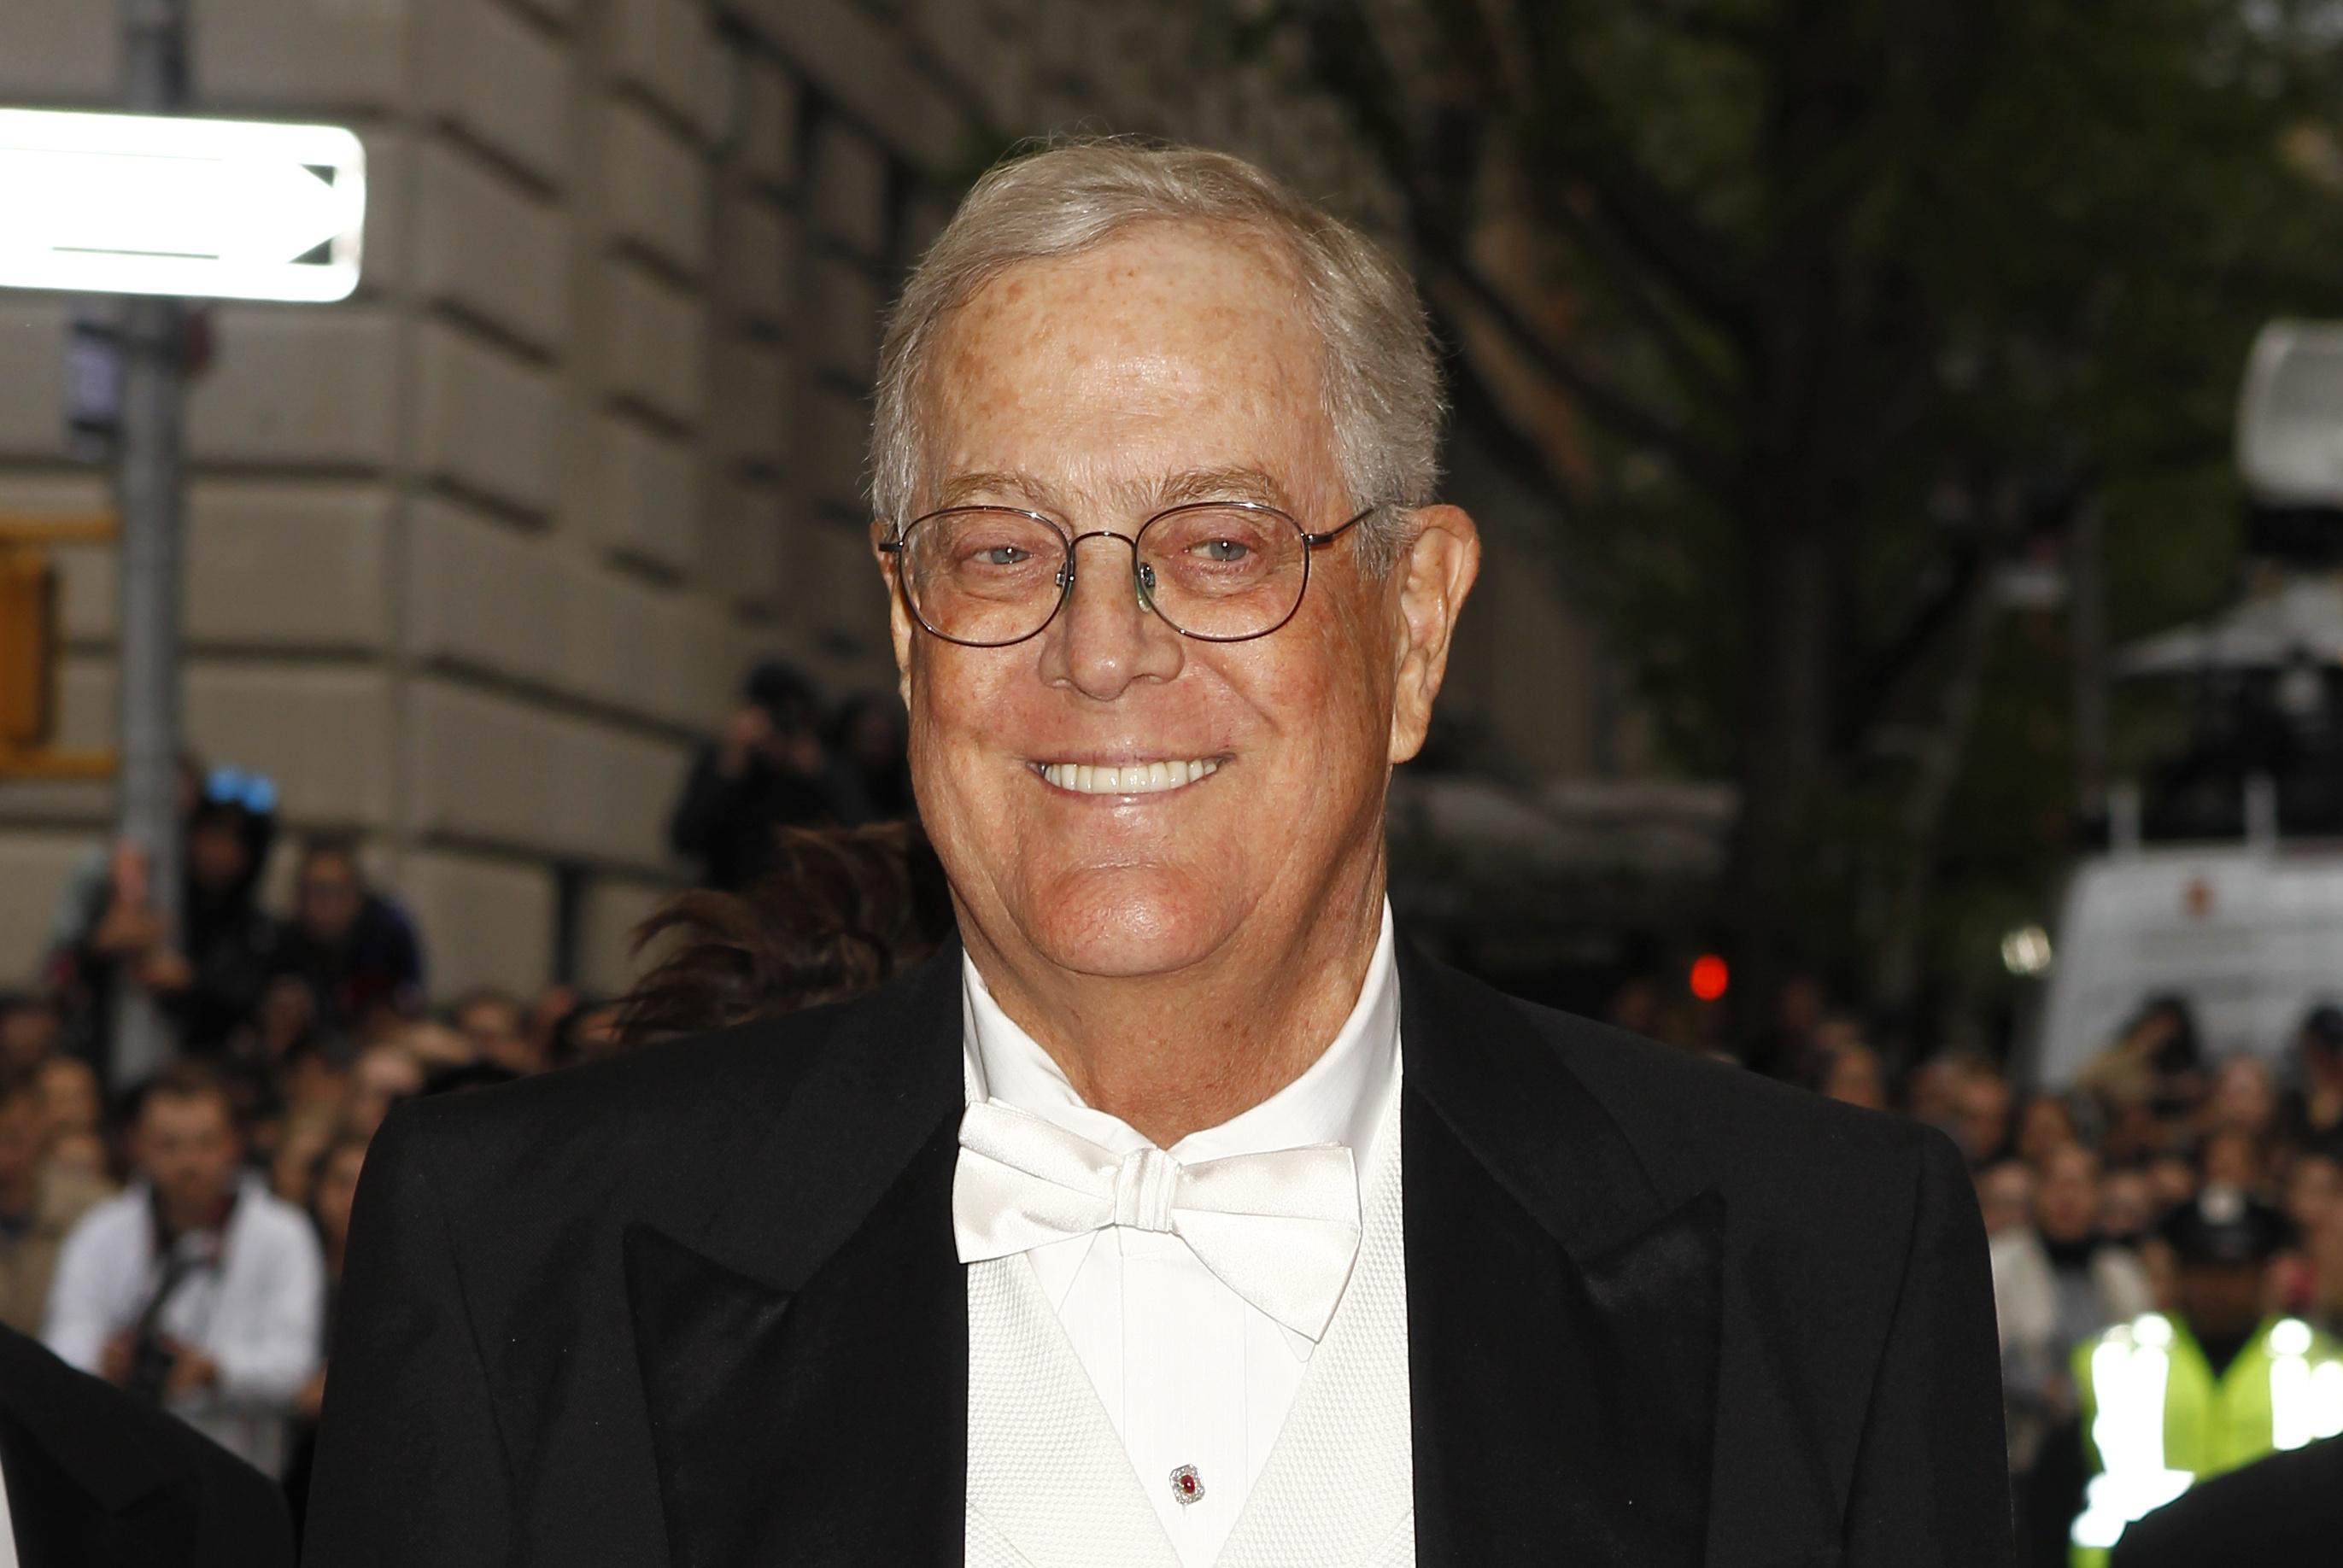 Heavyweight political donor David Koch to retire from Koch Industries